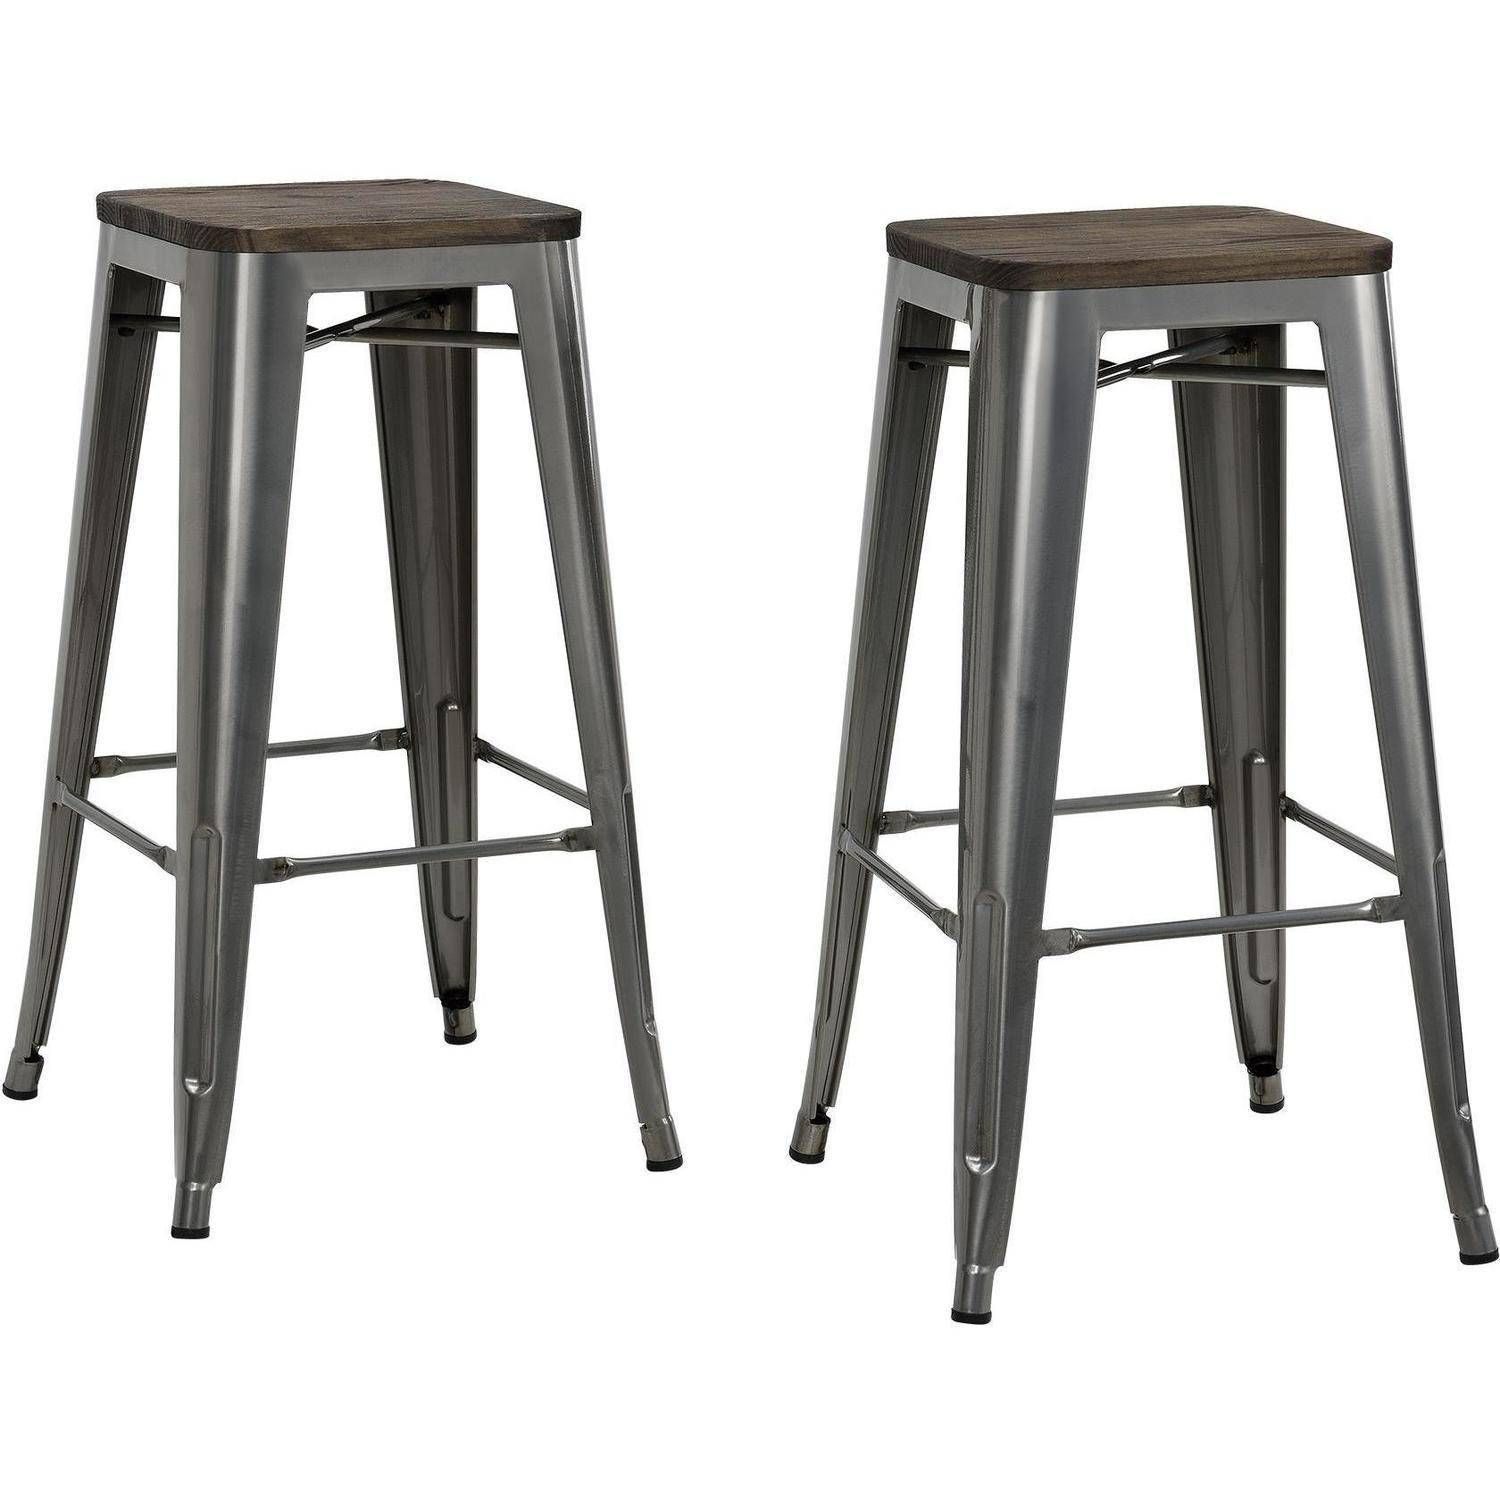 Home (With images) Backless bar stools, Metal counter